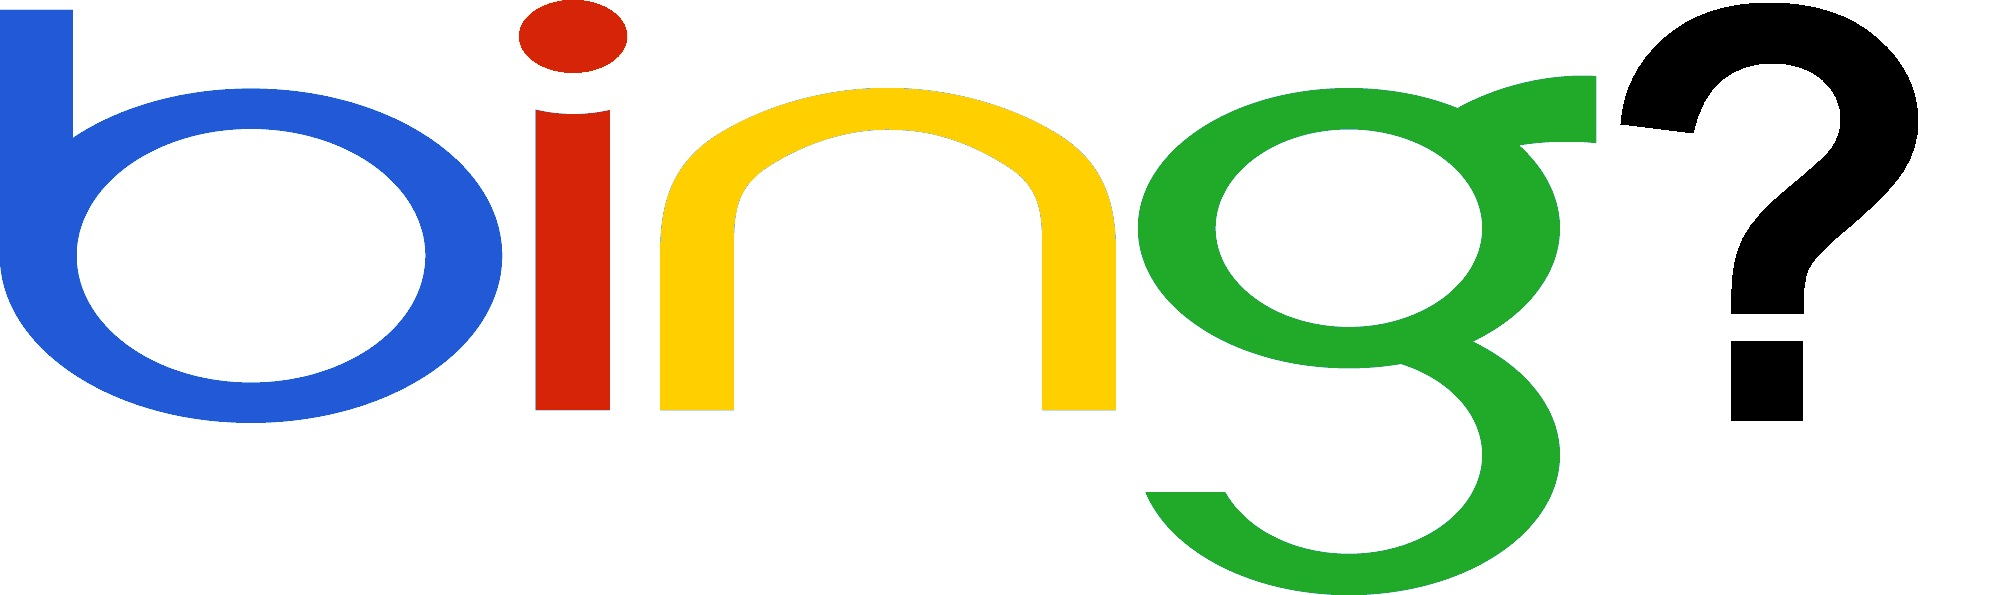 bing-logo-with-google-colors-question-mark